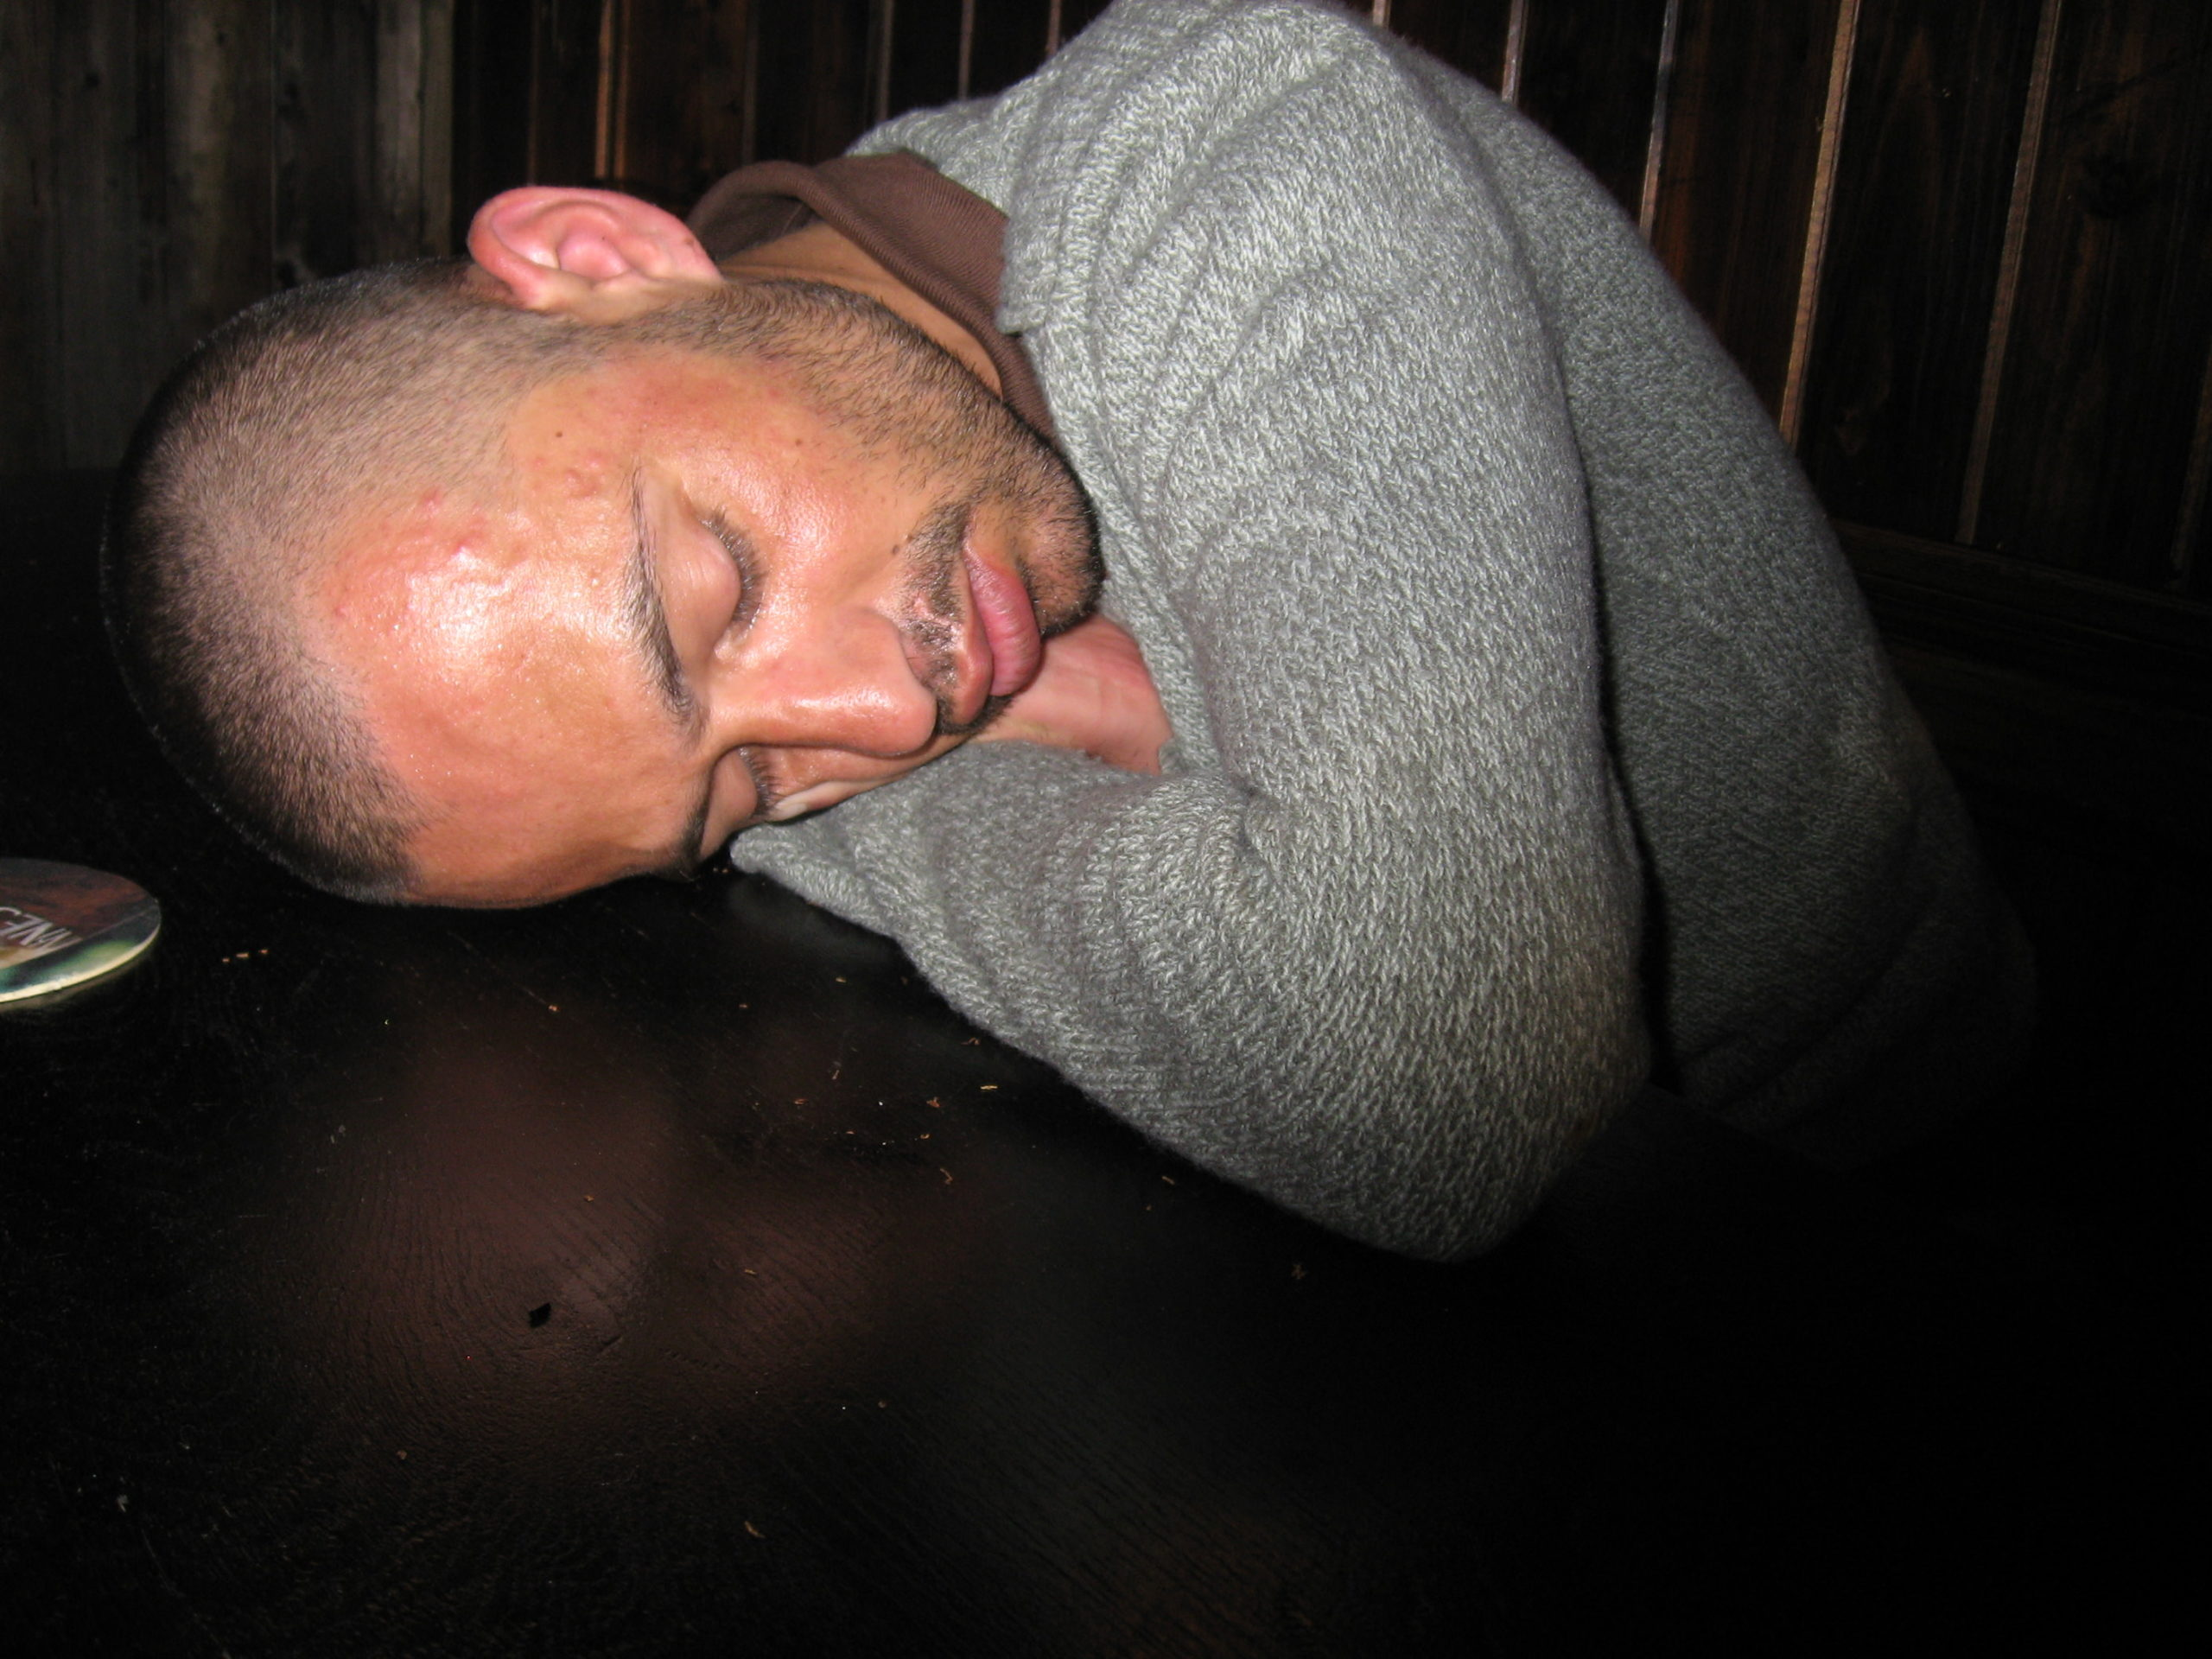 Sleeping on a table in Celtica pub drunk Brussels